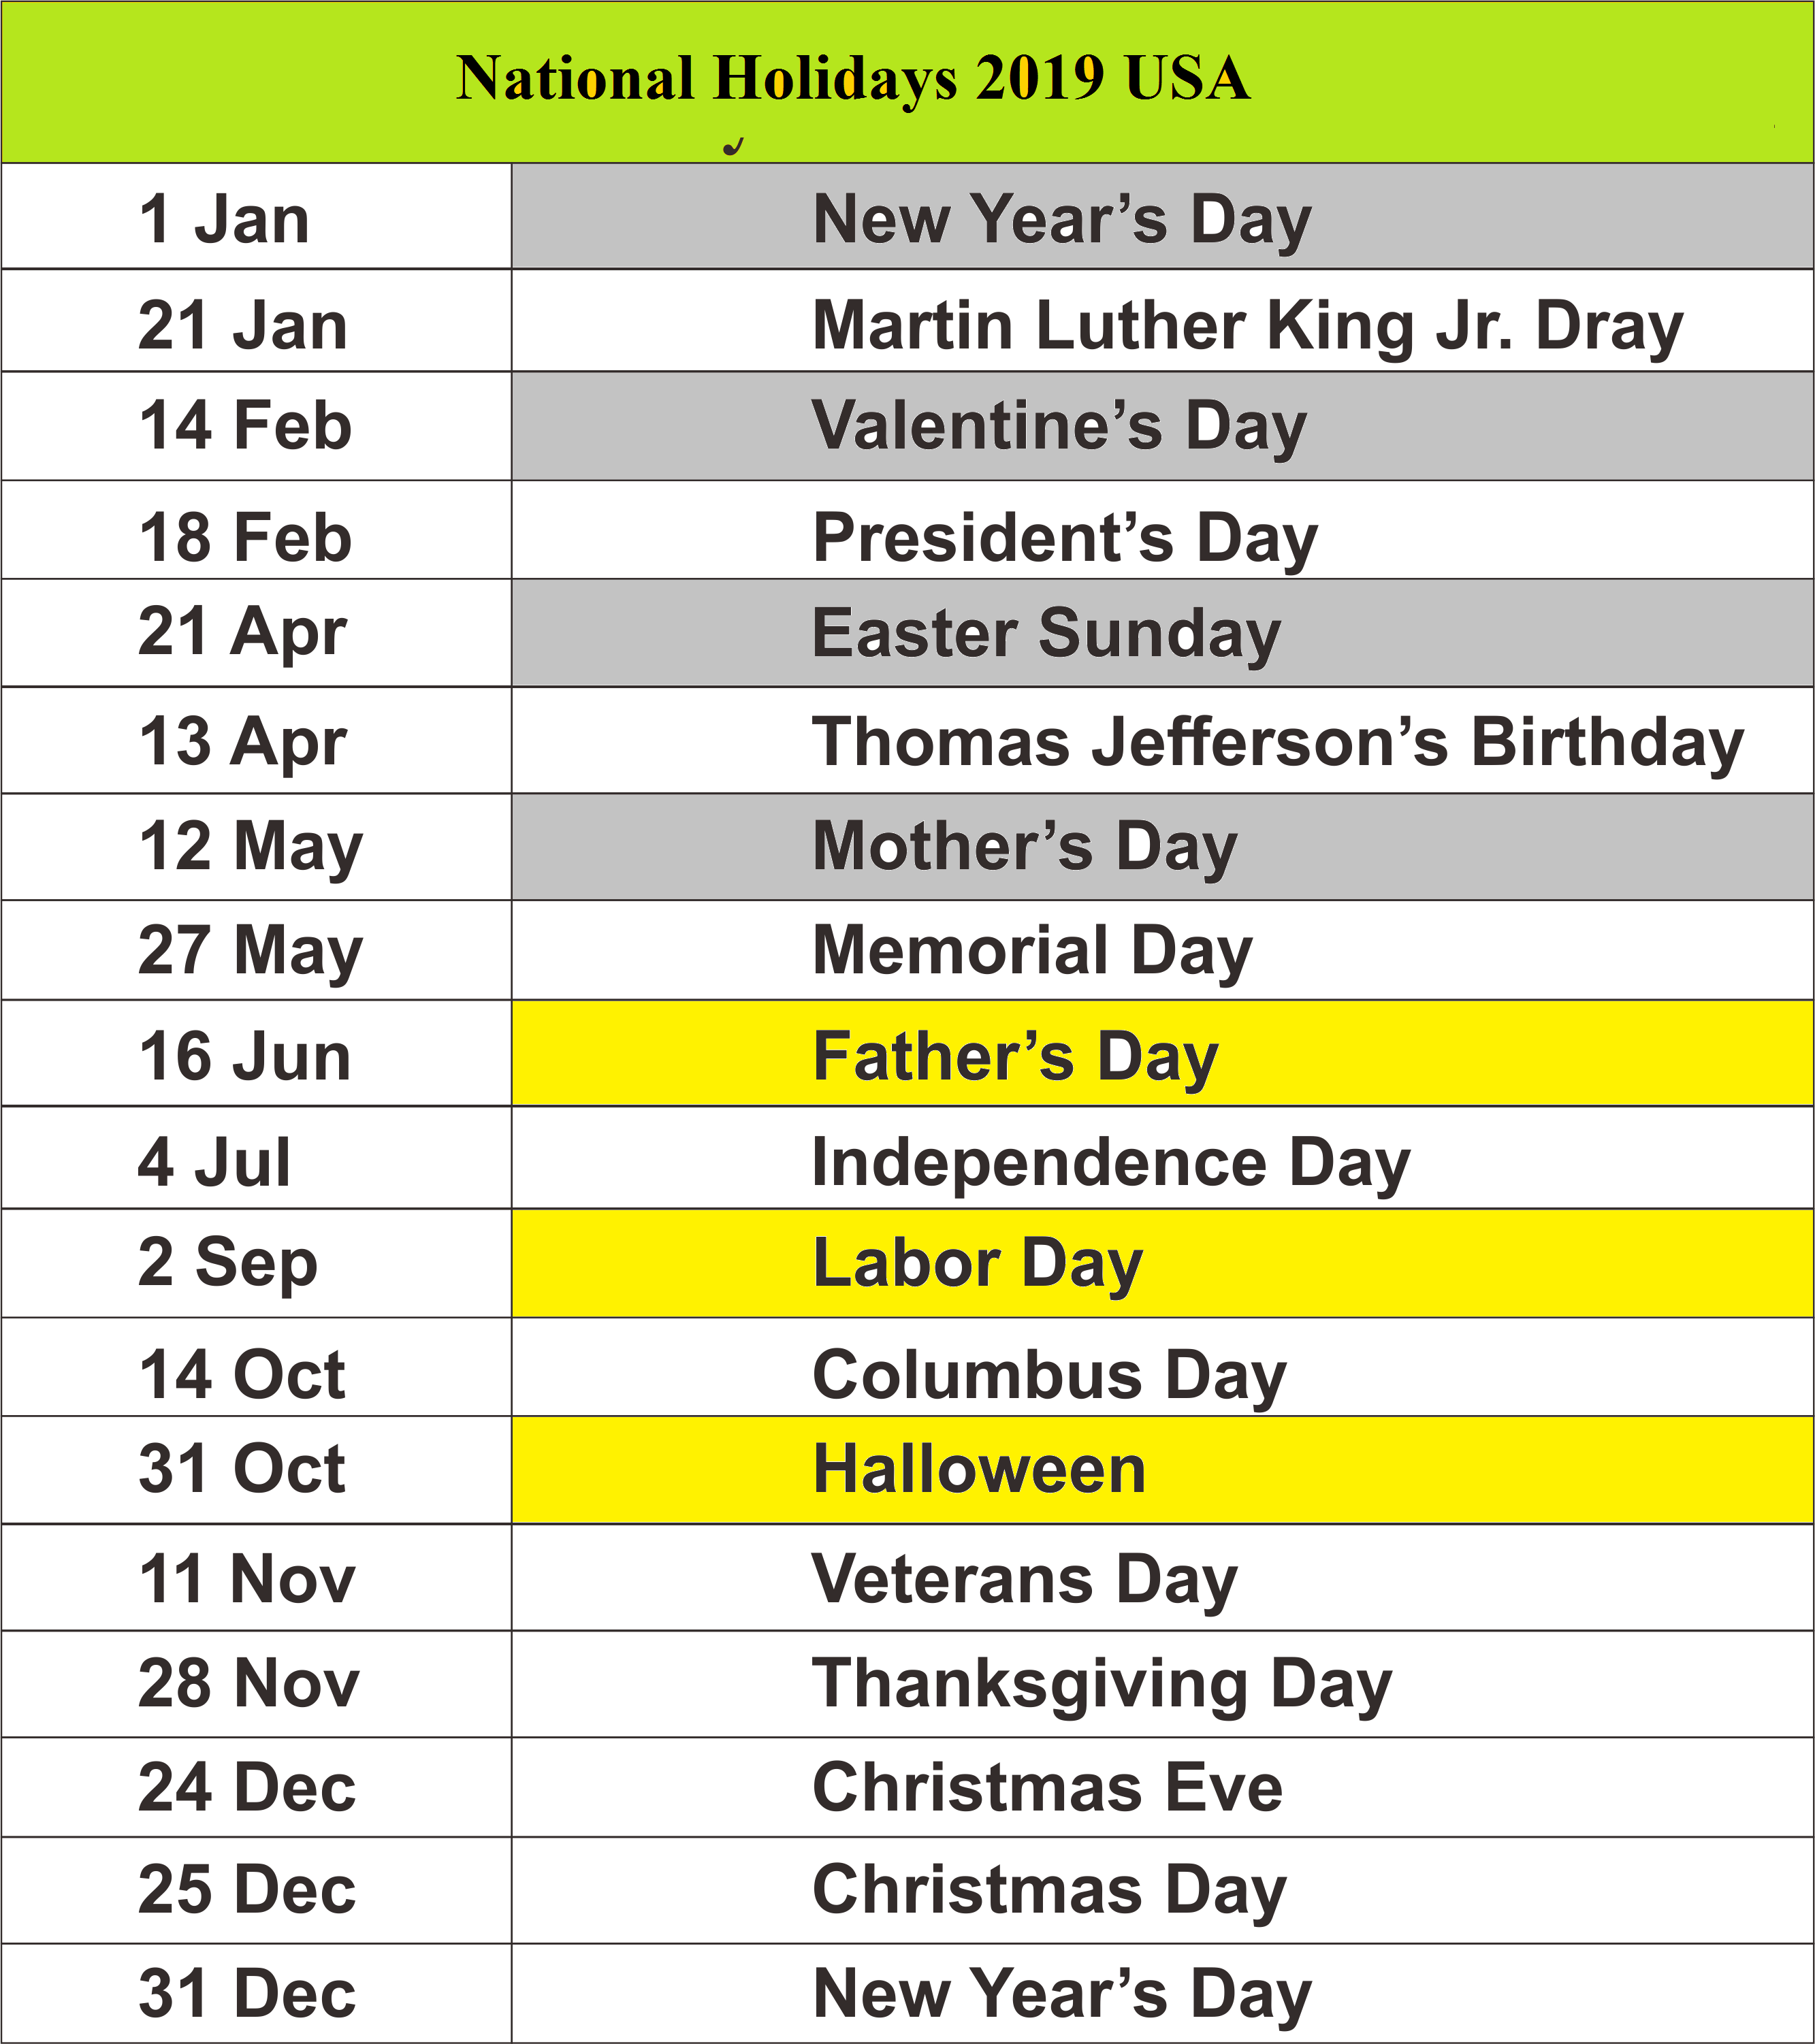 Federal Christmas Holiday 2019 Public Holidays 2019 for USA | US HOLIDAYS 2019 | BANK, SCHOOL